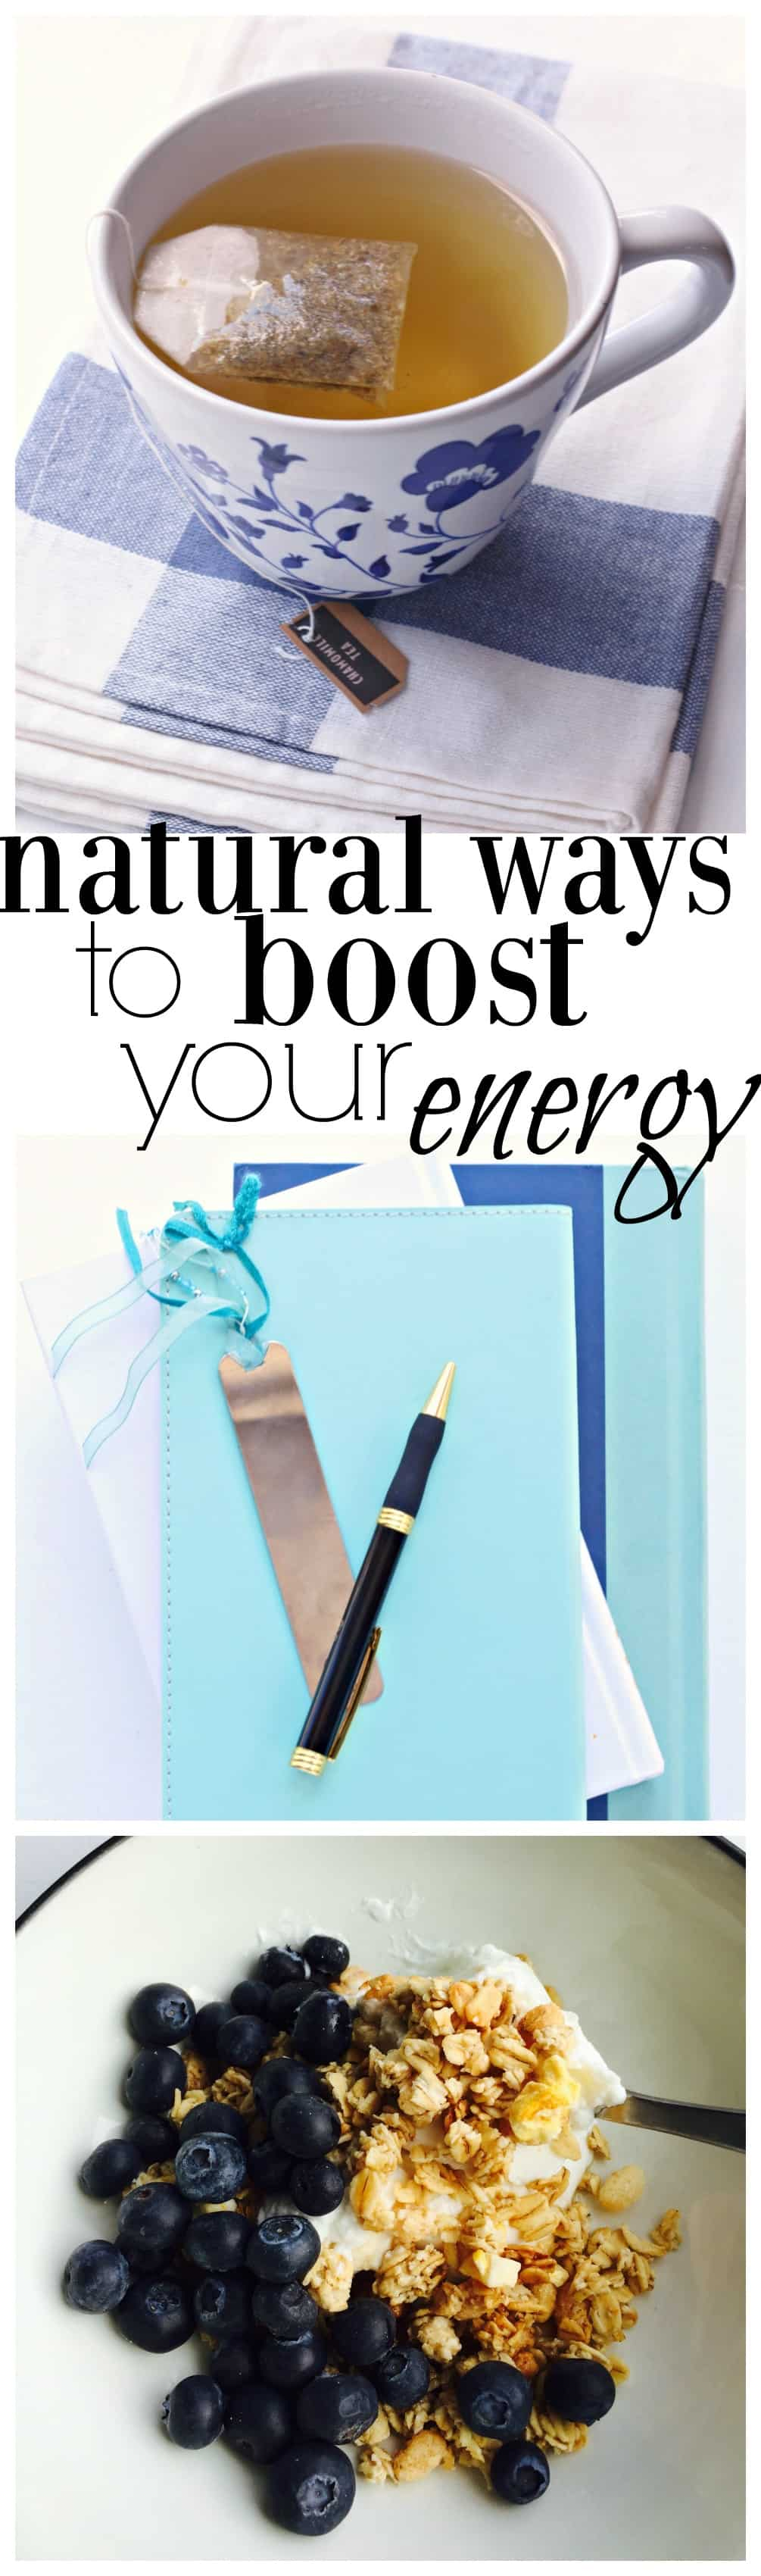 how to get a boost of energy naturally